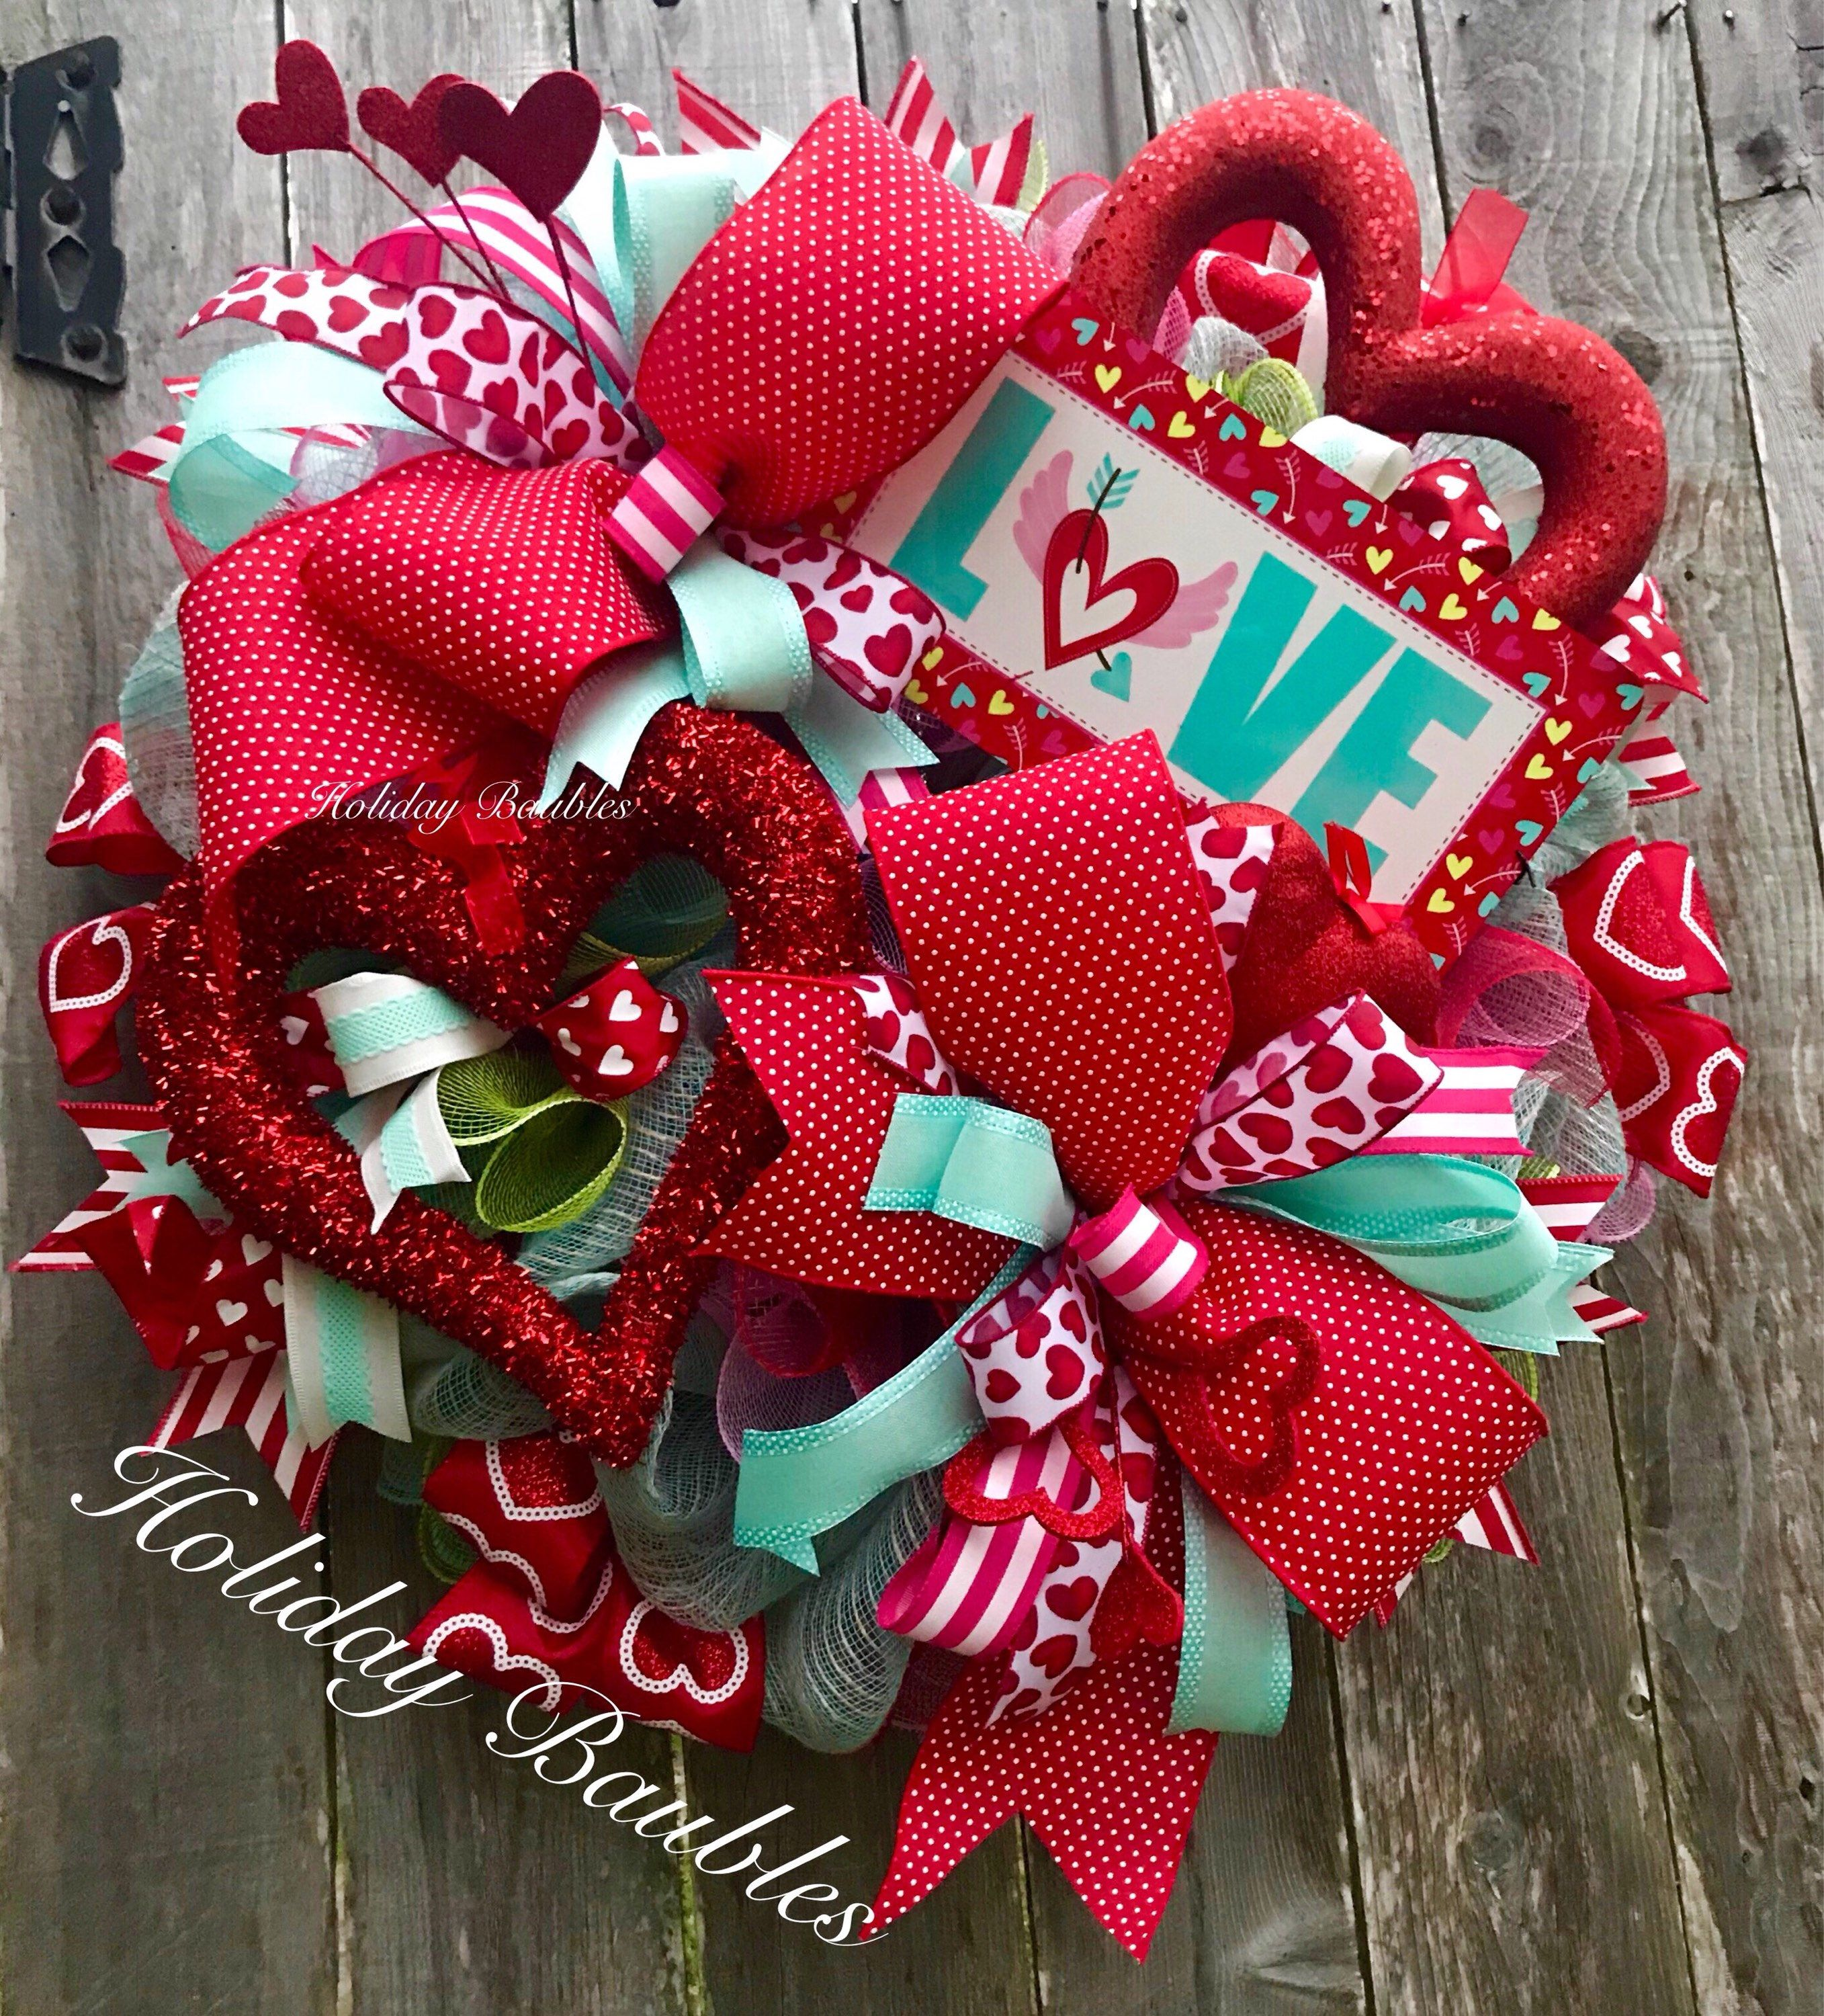 A personal favorite from my etsy shop httpsetsylisting door wreaths a personal favorite from my etsy shop httpsetsy rubansaba